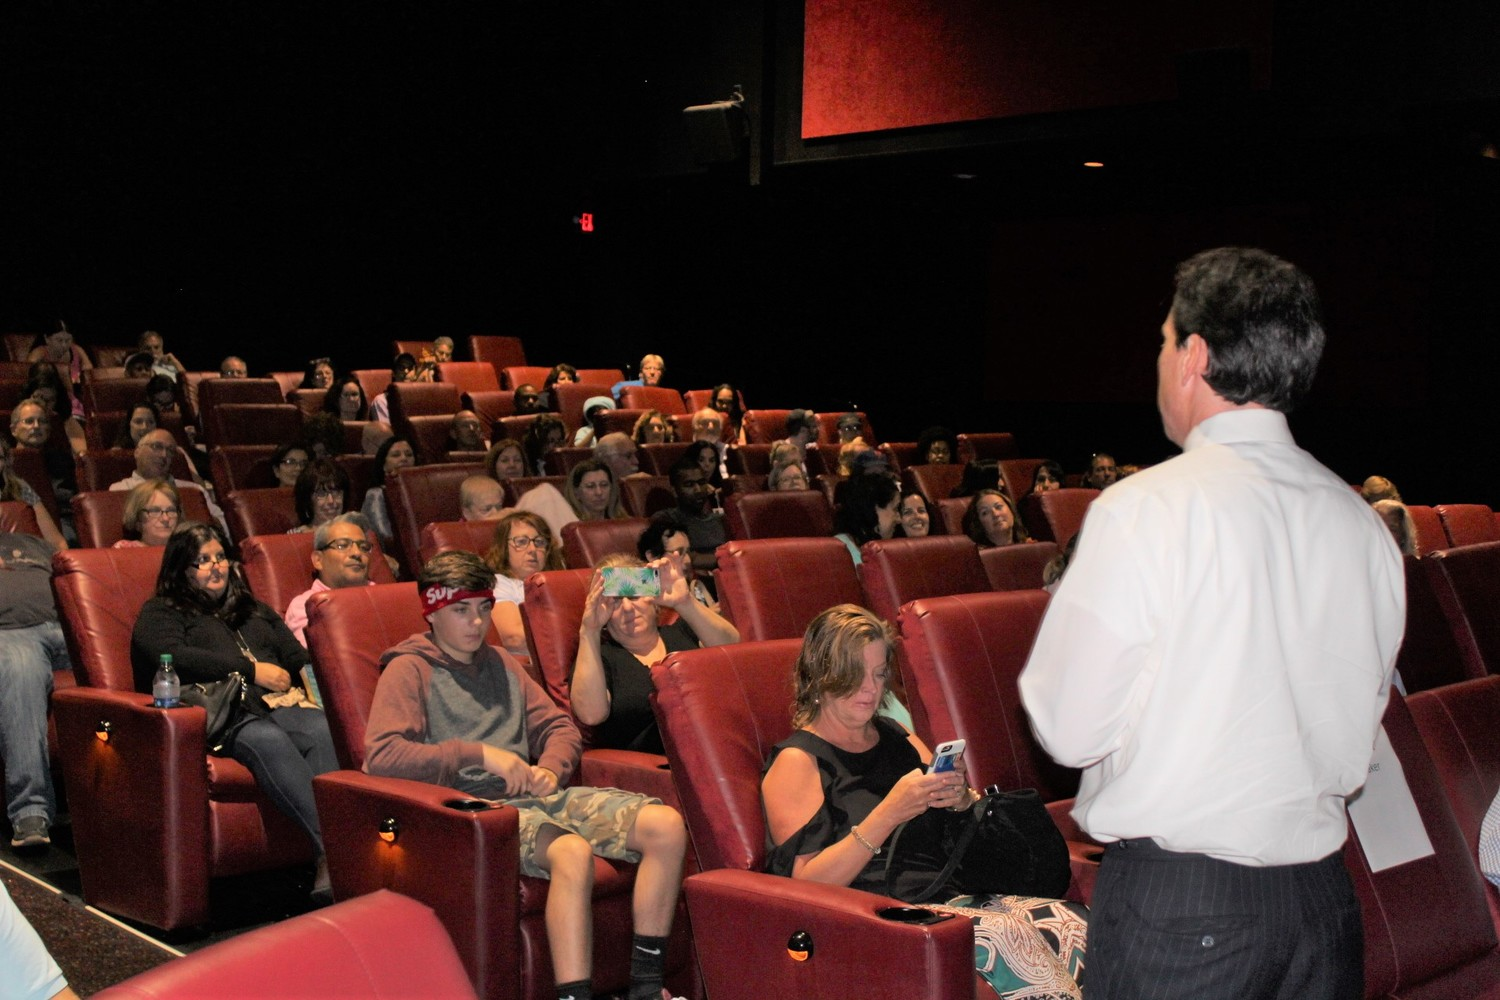 Dozens of Long Islanders turned out for a film screening on Sept. 27 in Rockville Centre, which was followed by a panel discussion about climate change and energy efficiency.